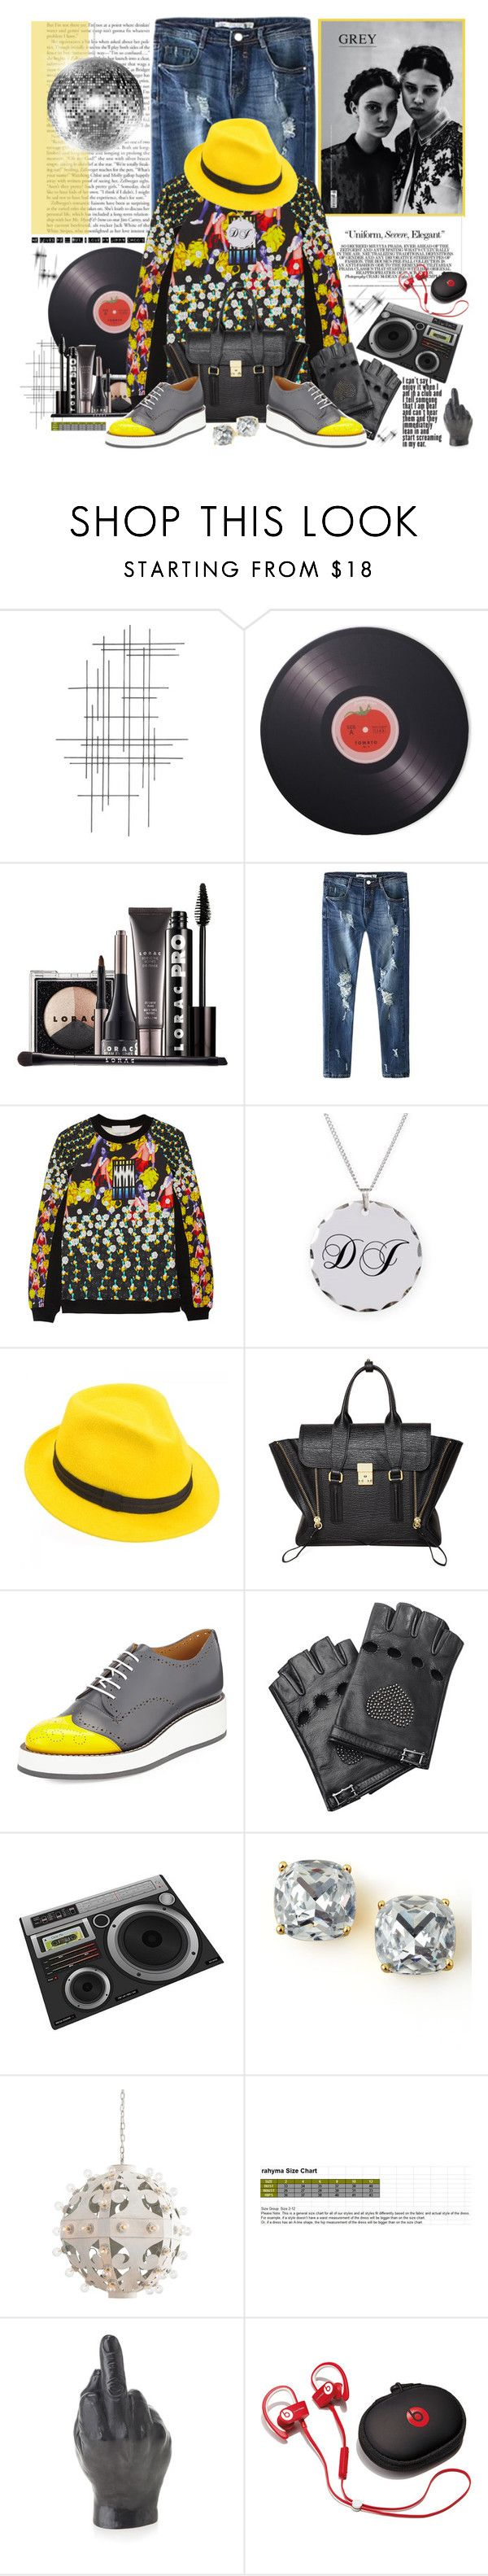 """""""Hey DJ... You Ready to Party, Right?"""" by holjon2110 ❤ liked on Polyvore featuring Crate and Barrel, Joseph Joseph, LORAC, Prada, Peter Pilotto, Mademoiselle Slassi, 3.1 Phillip Lim, The Office Of Angela Scott, Valentino and Jimmy Choo"""